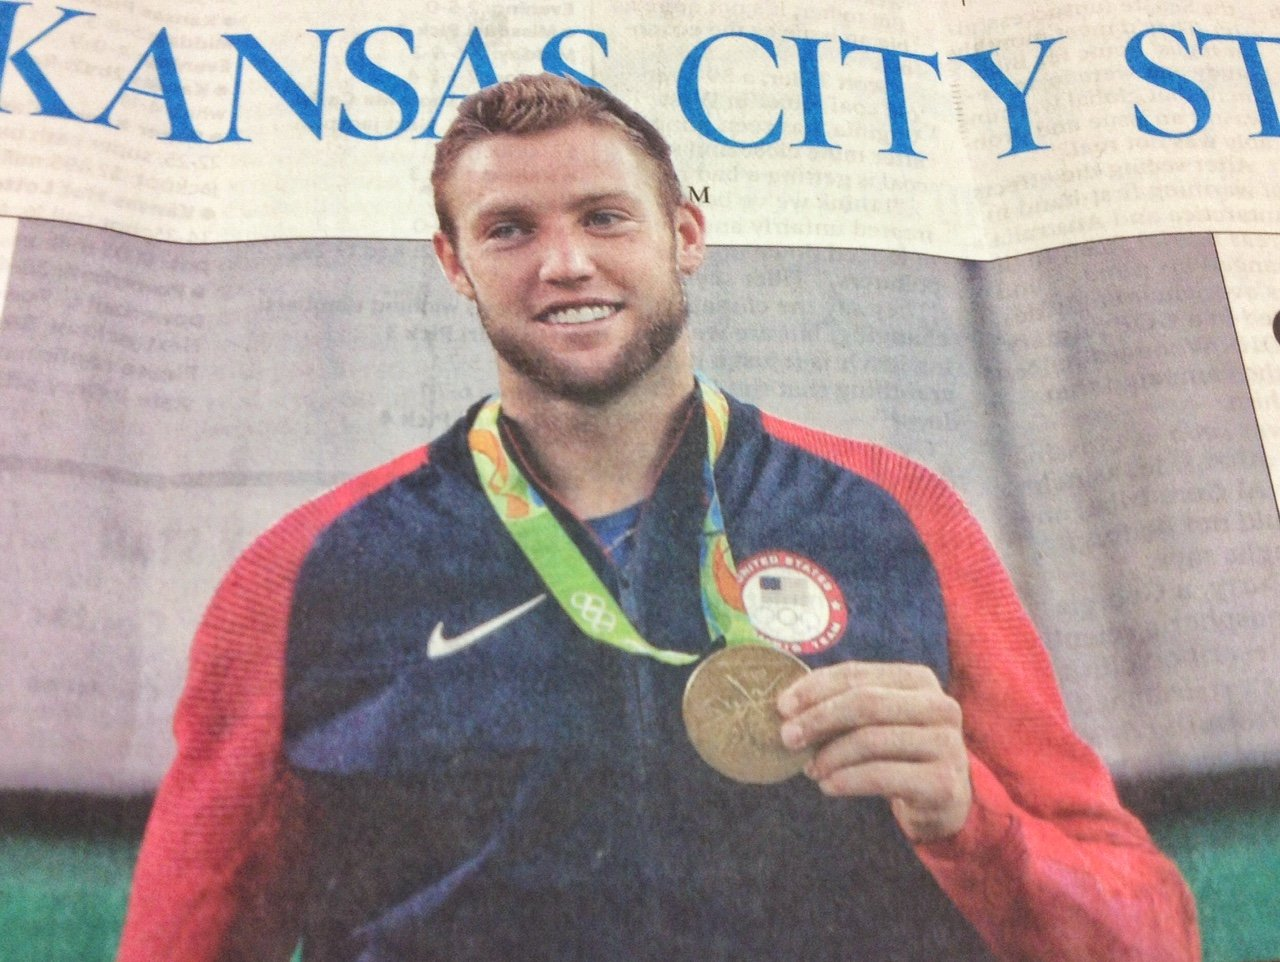 Olympic gold medalist Jack Sock, of Overland Park, appears on the front page of Monday's Kansas City Star. (Photo by J. Schafer)